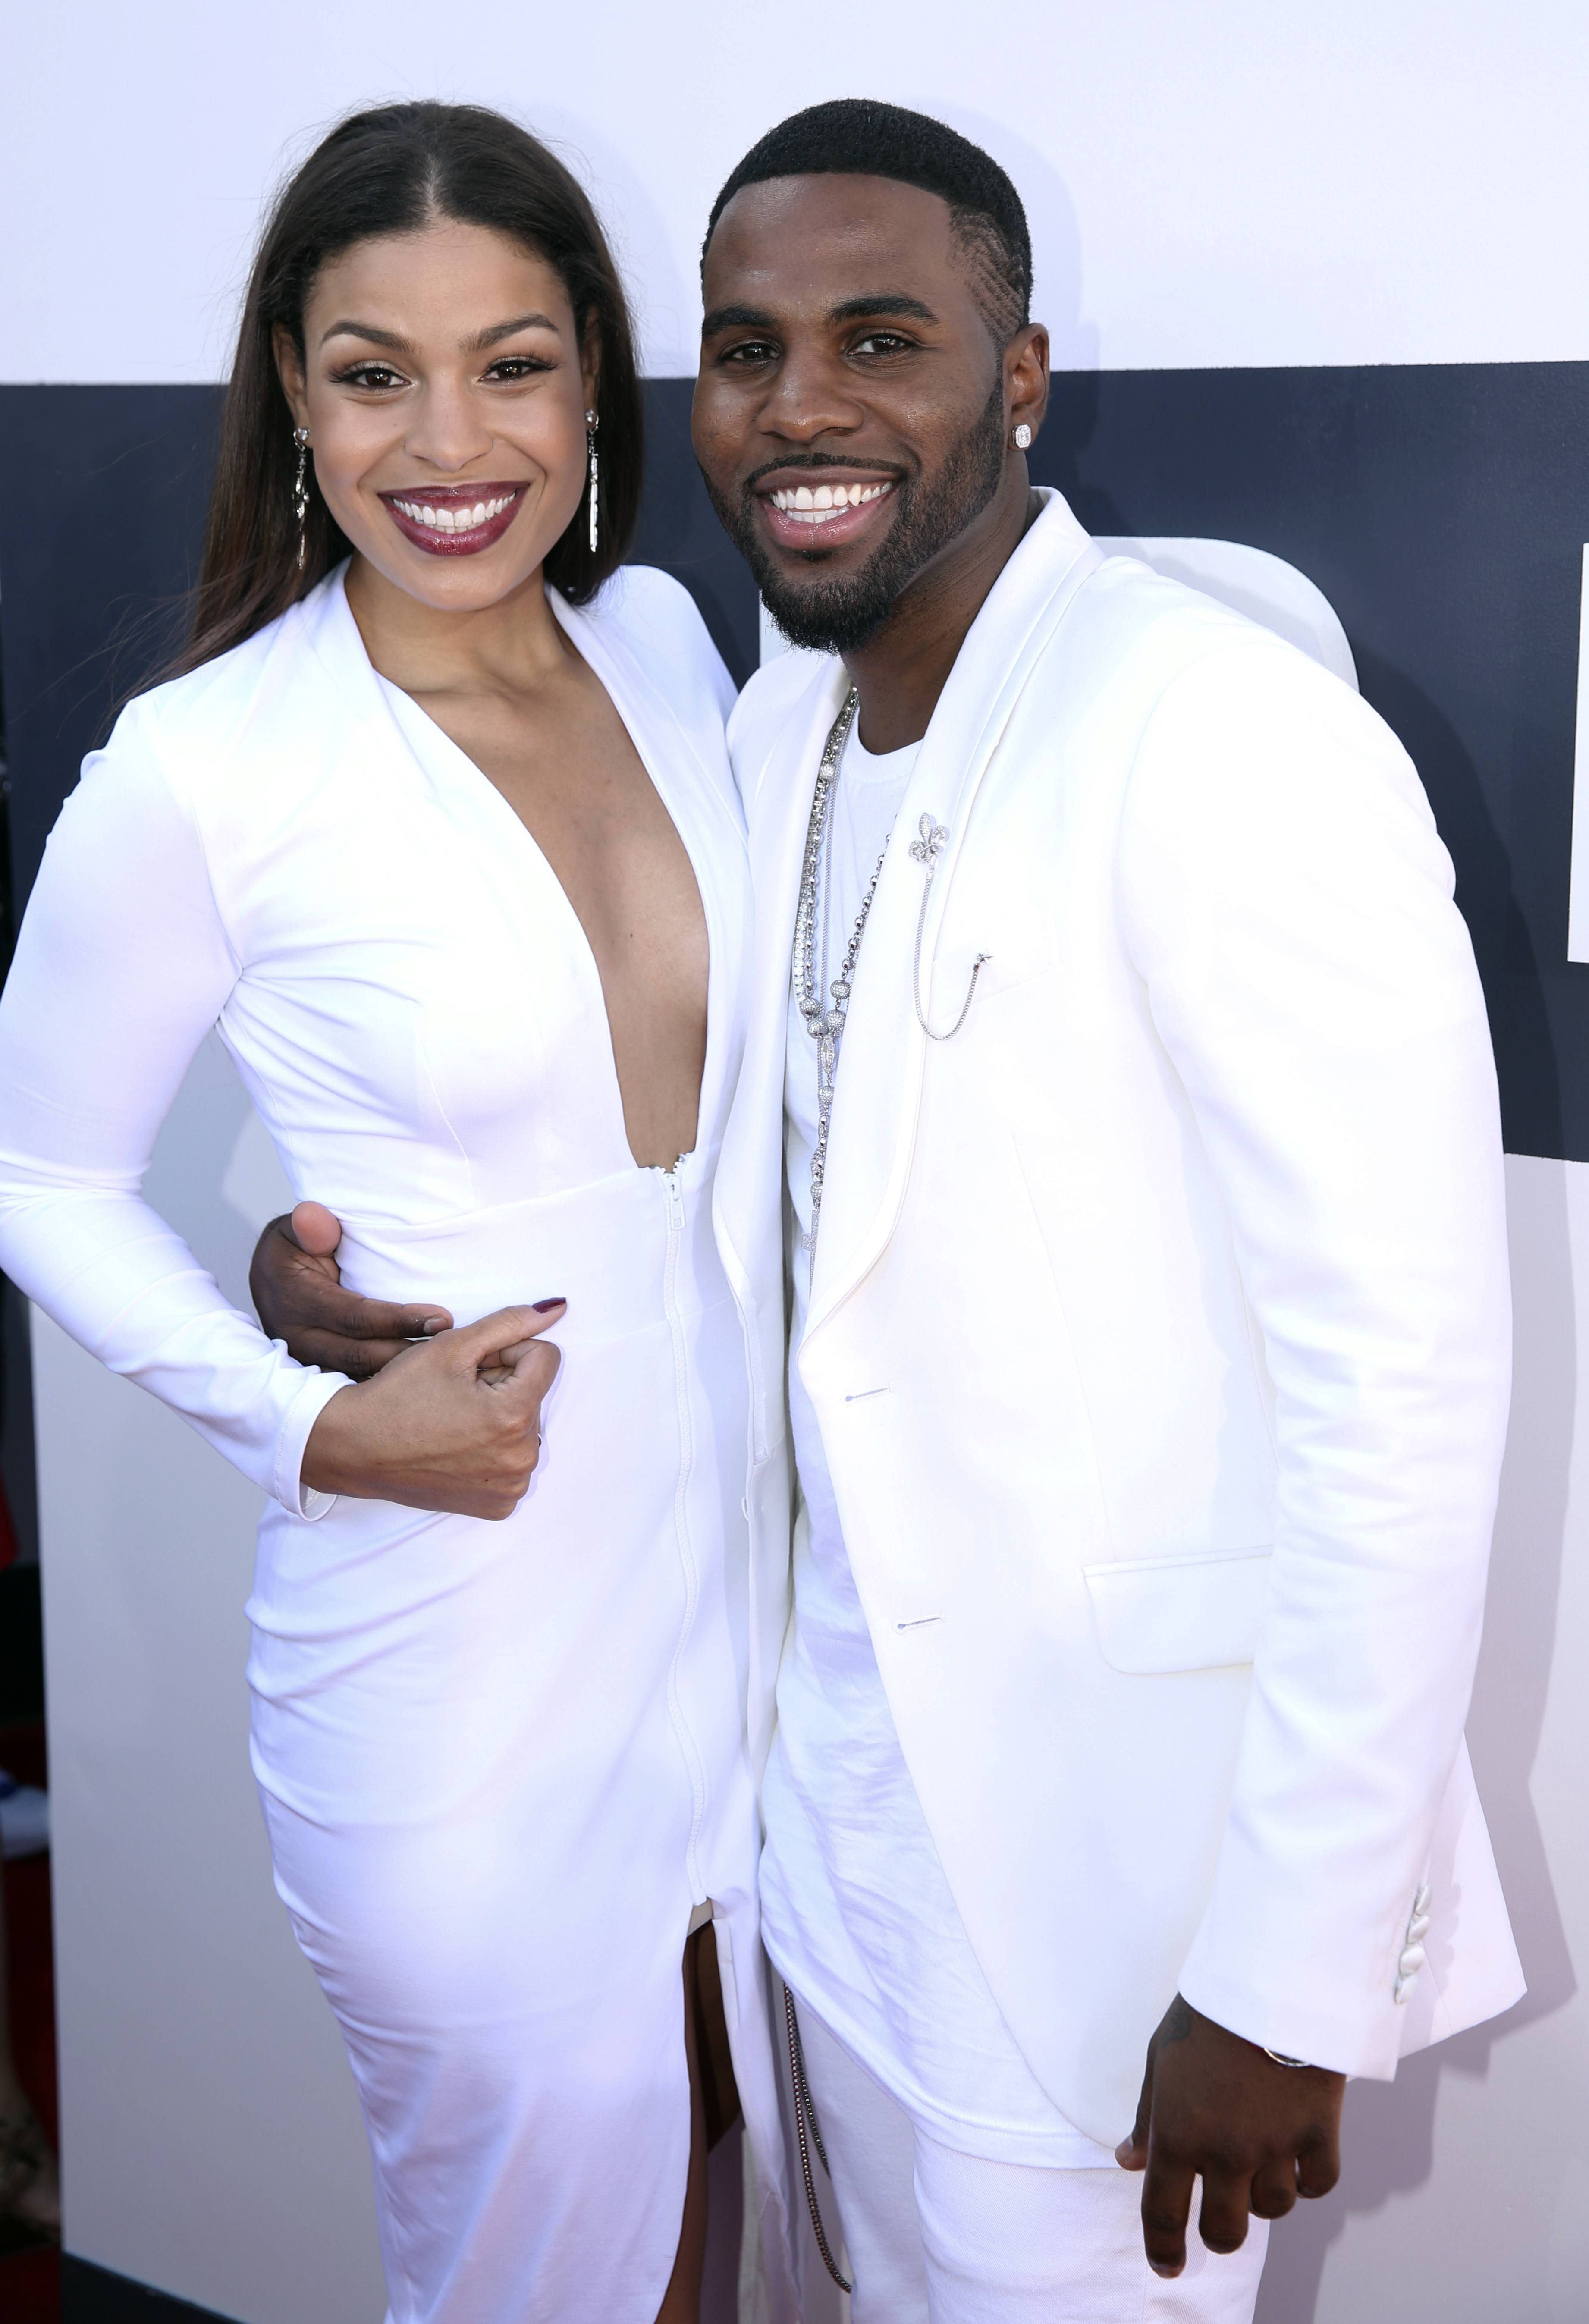 BEST: Normally super matchy couples are a bad thing (see Katy Perry and Riff Raff), but Jordin Sparks, left, and Jason Derulo look smitten and smashing on the red carpet.